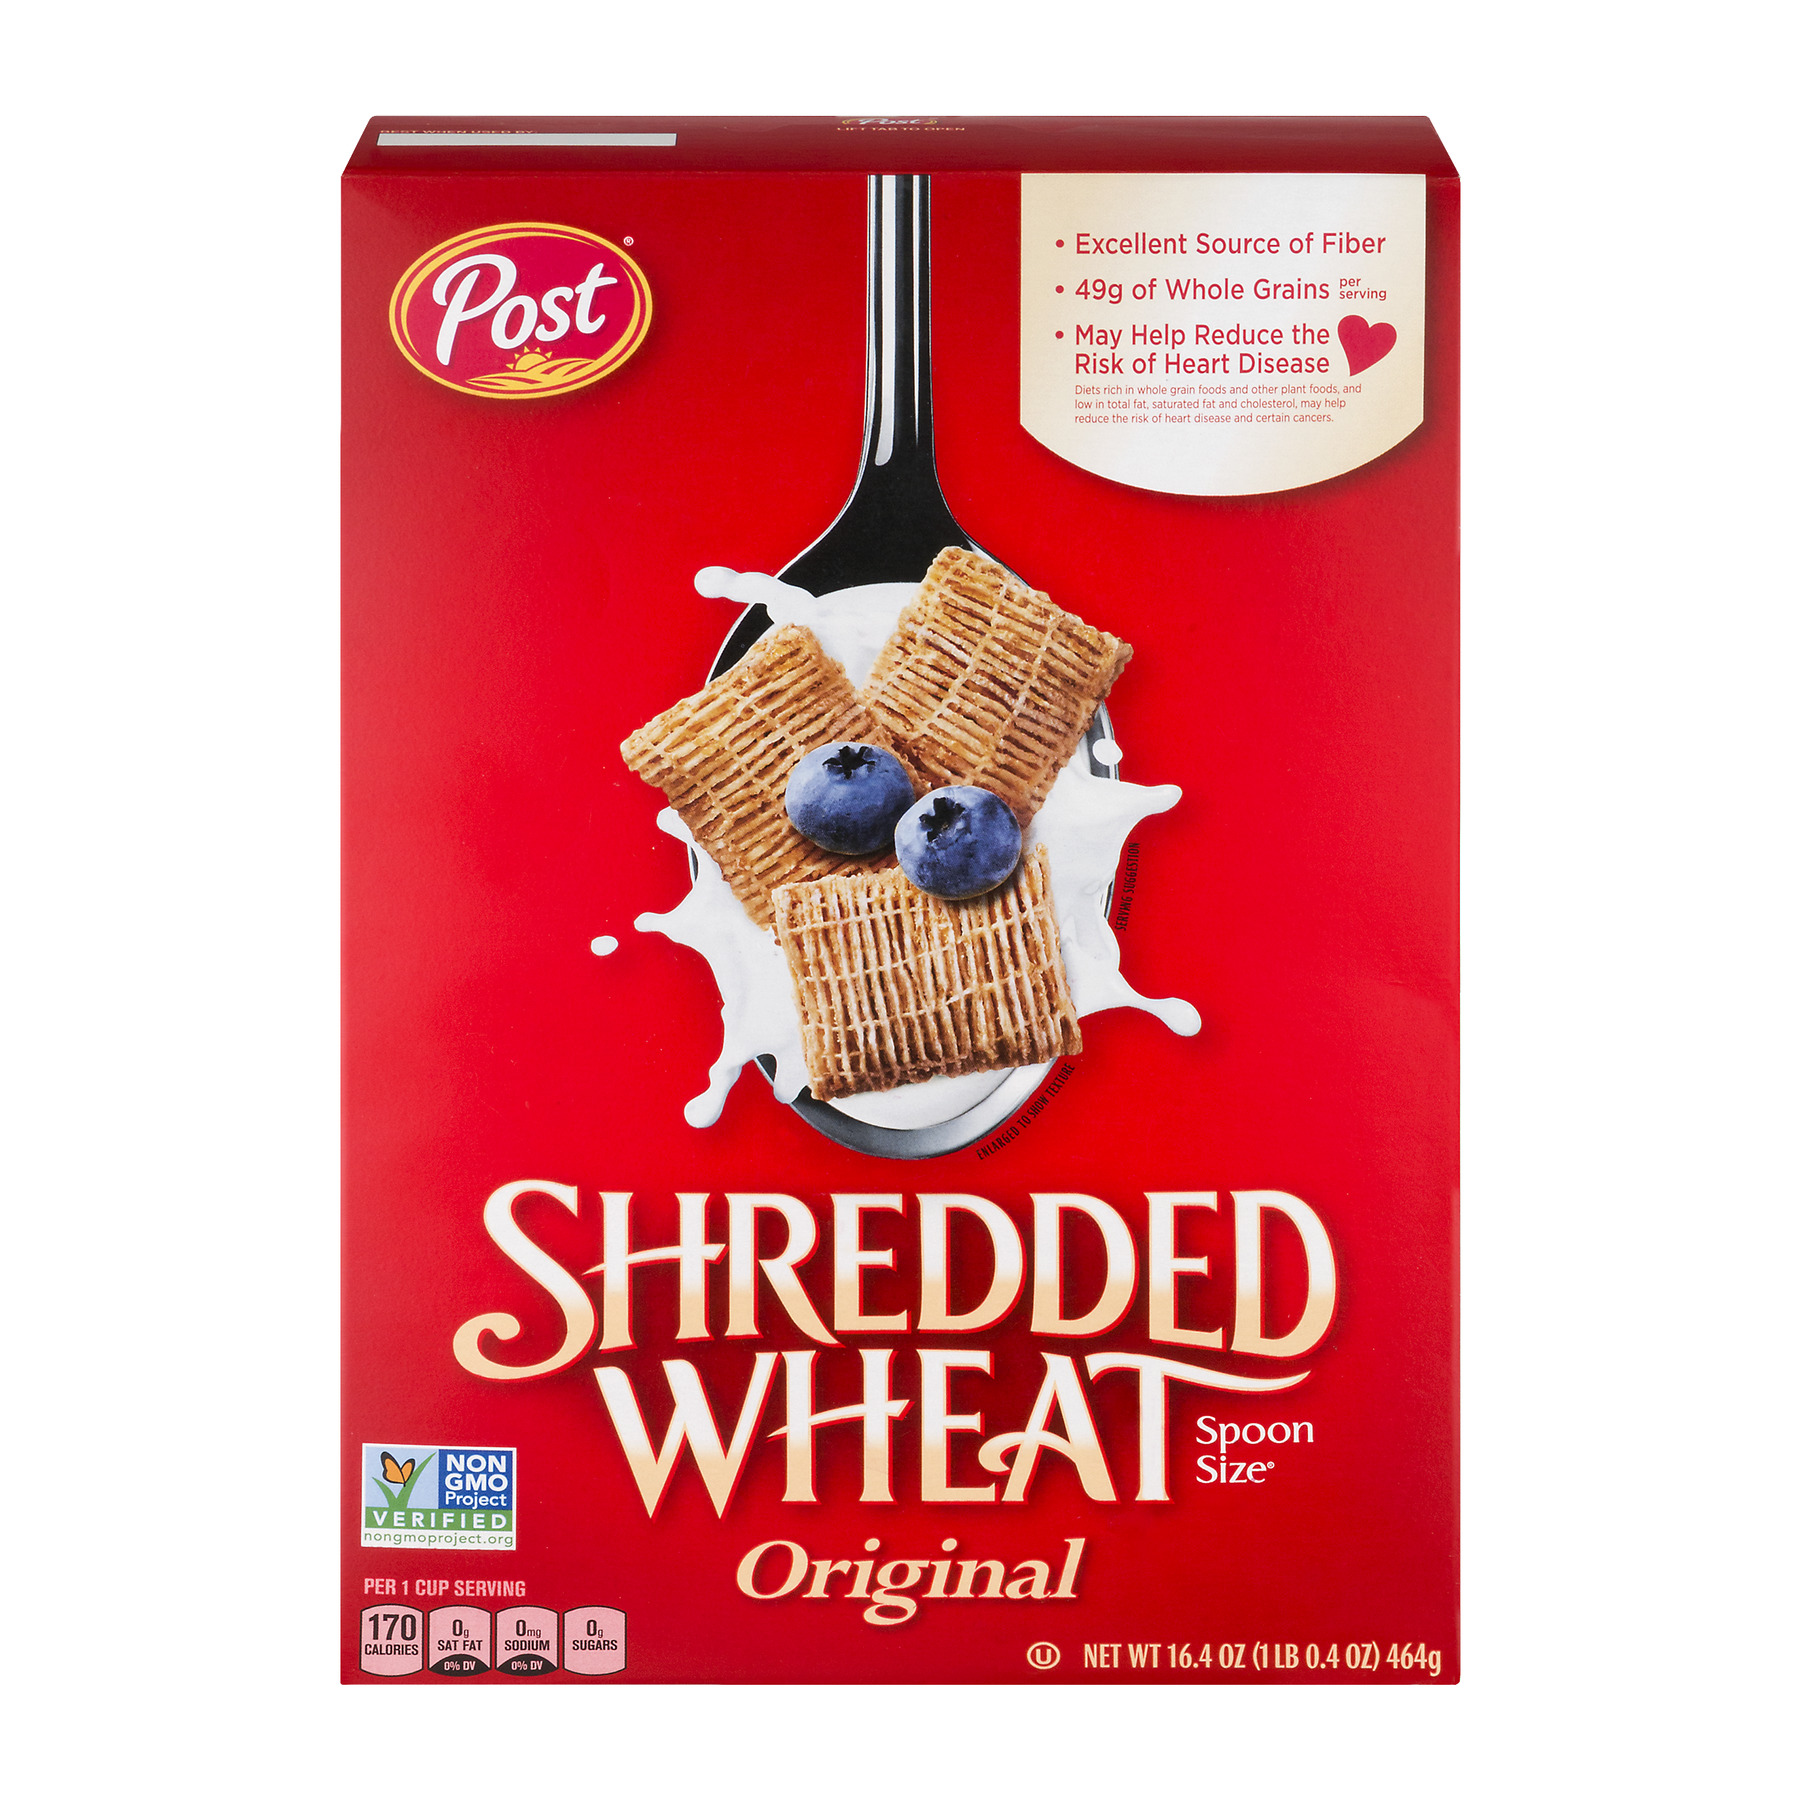 Post® Shredded Wheat Spoon Size® Original Cereal 16.4 oz. Box